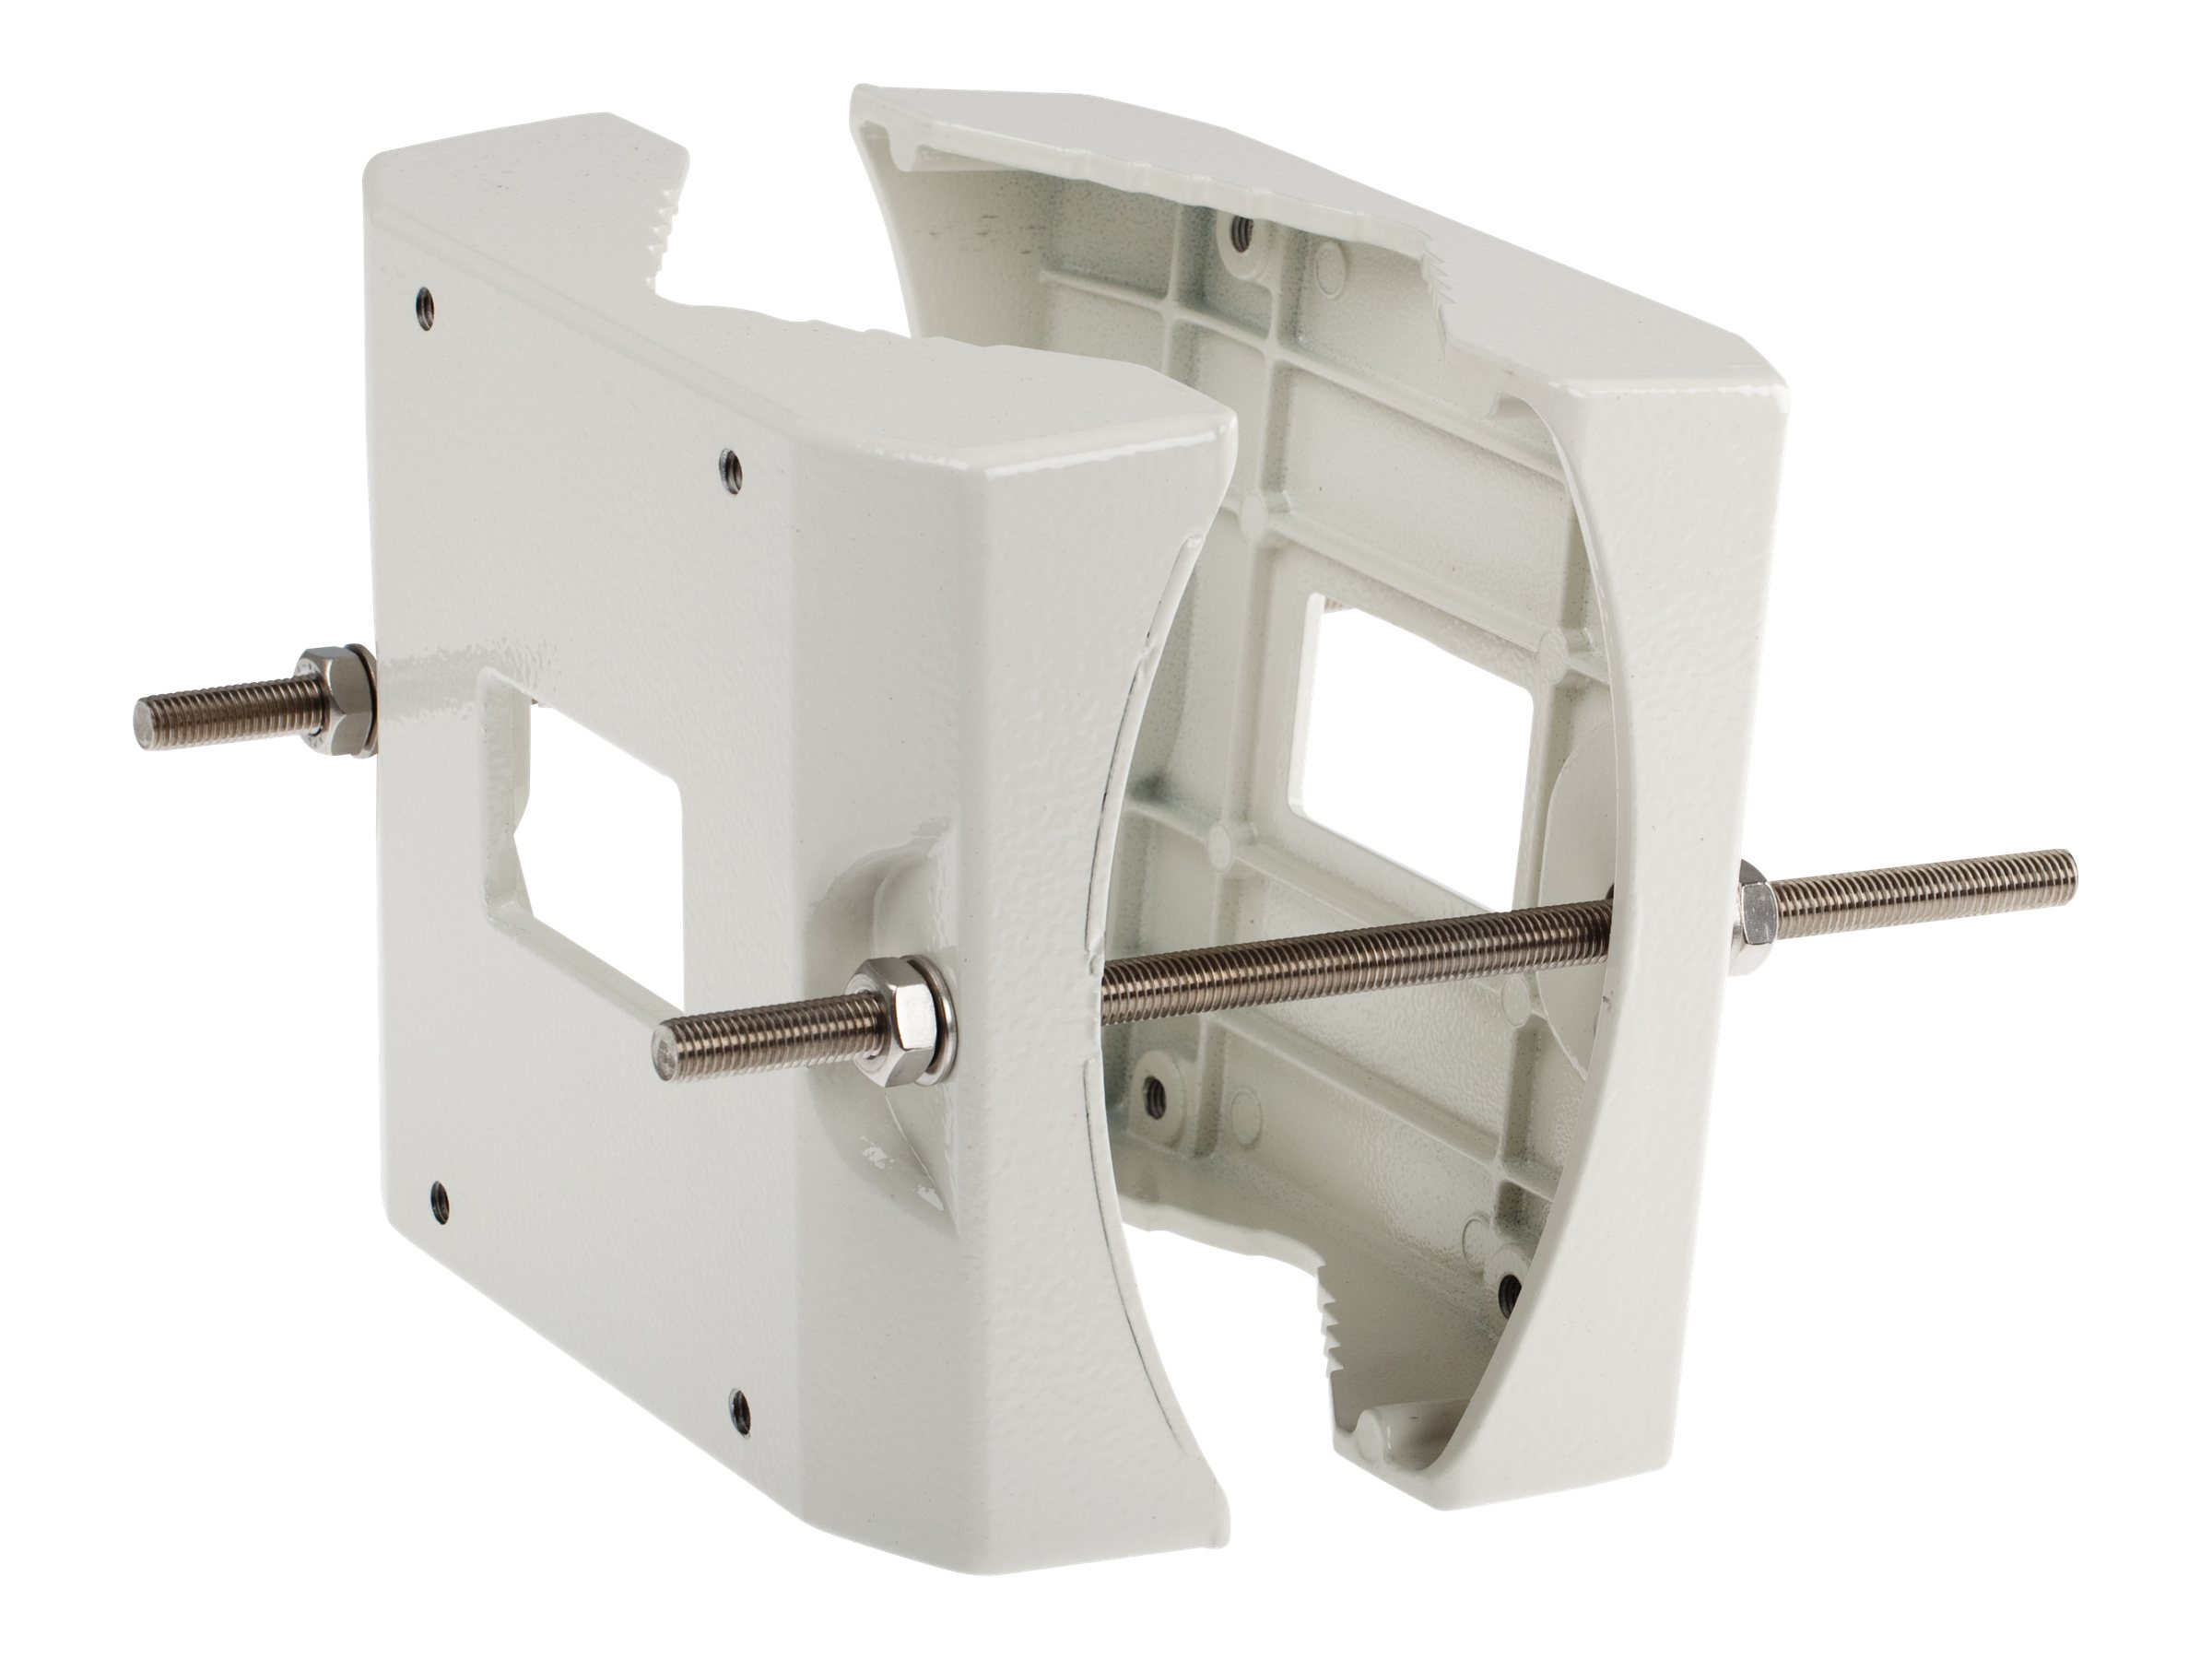 Axis Bracket for 80-150mm Diameter Poles